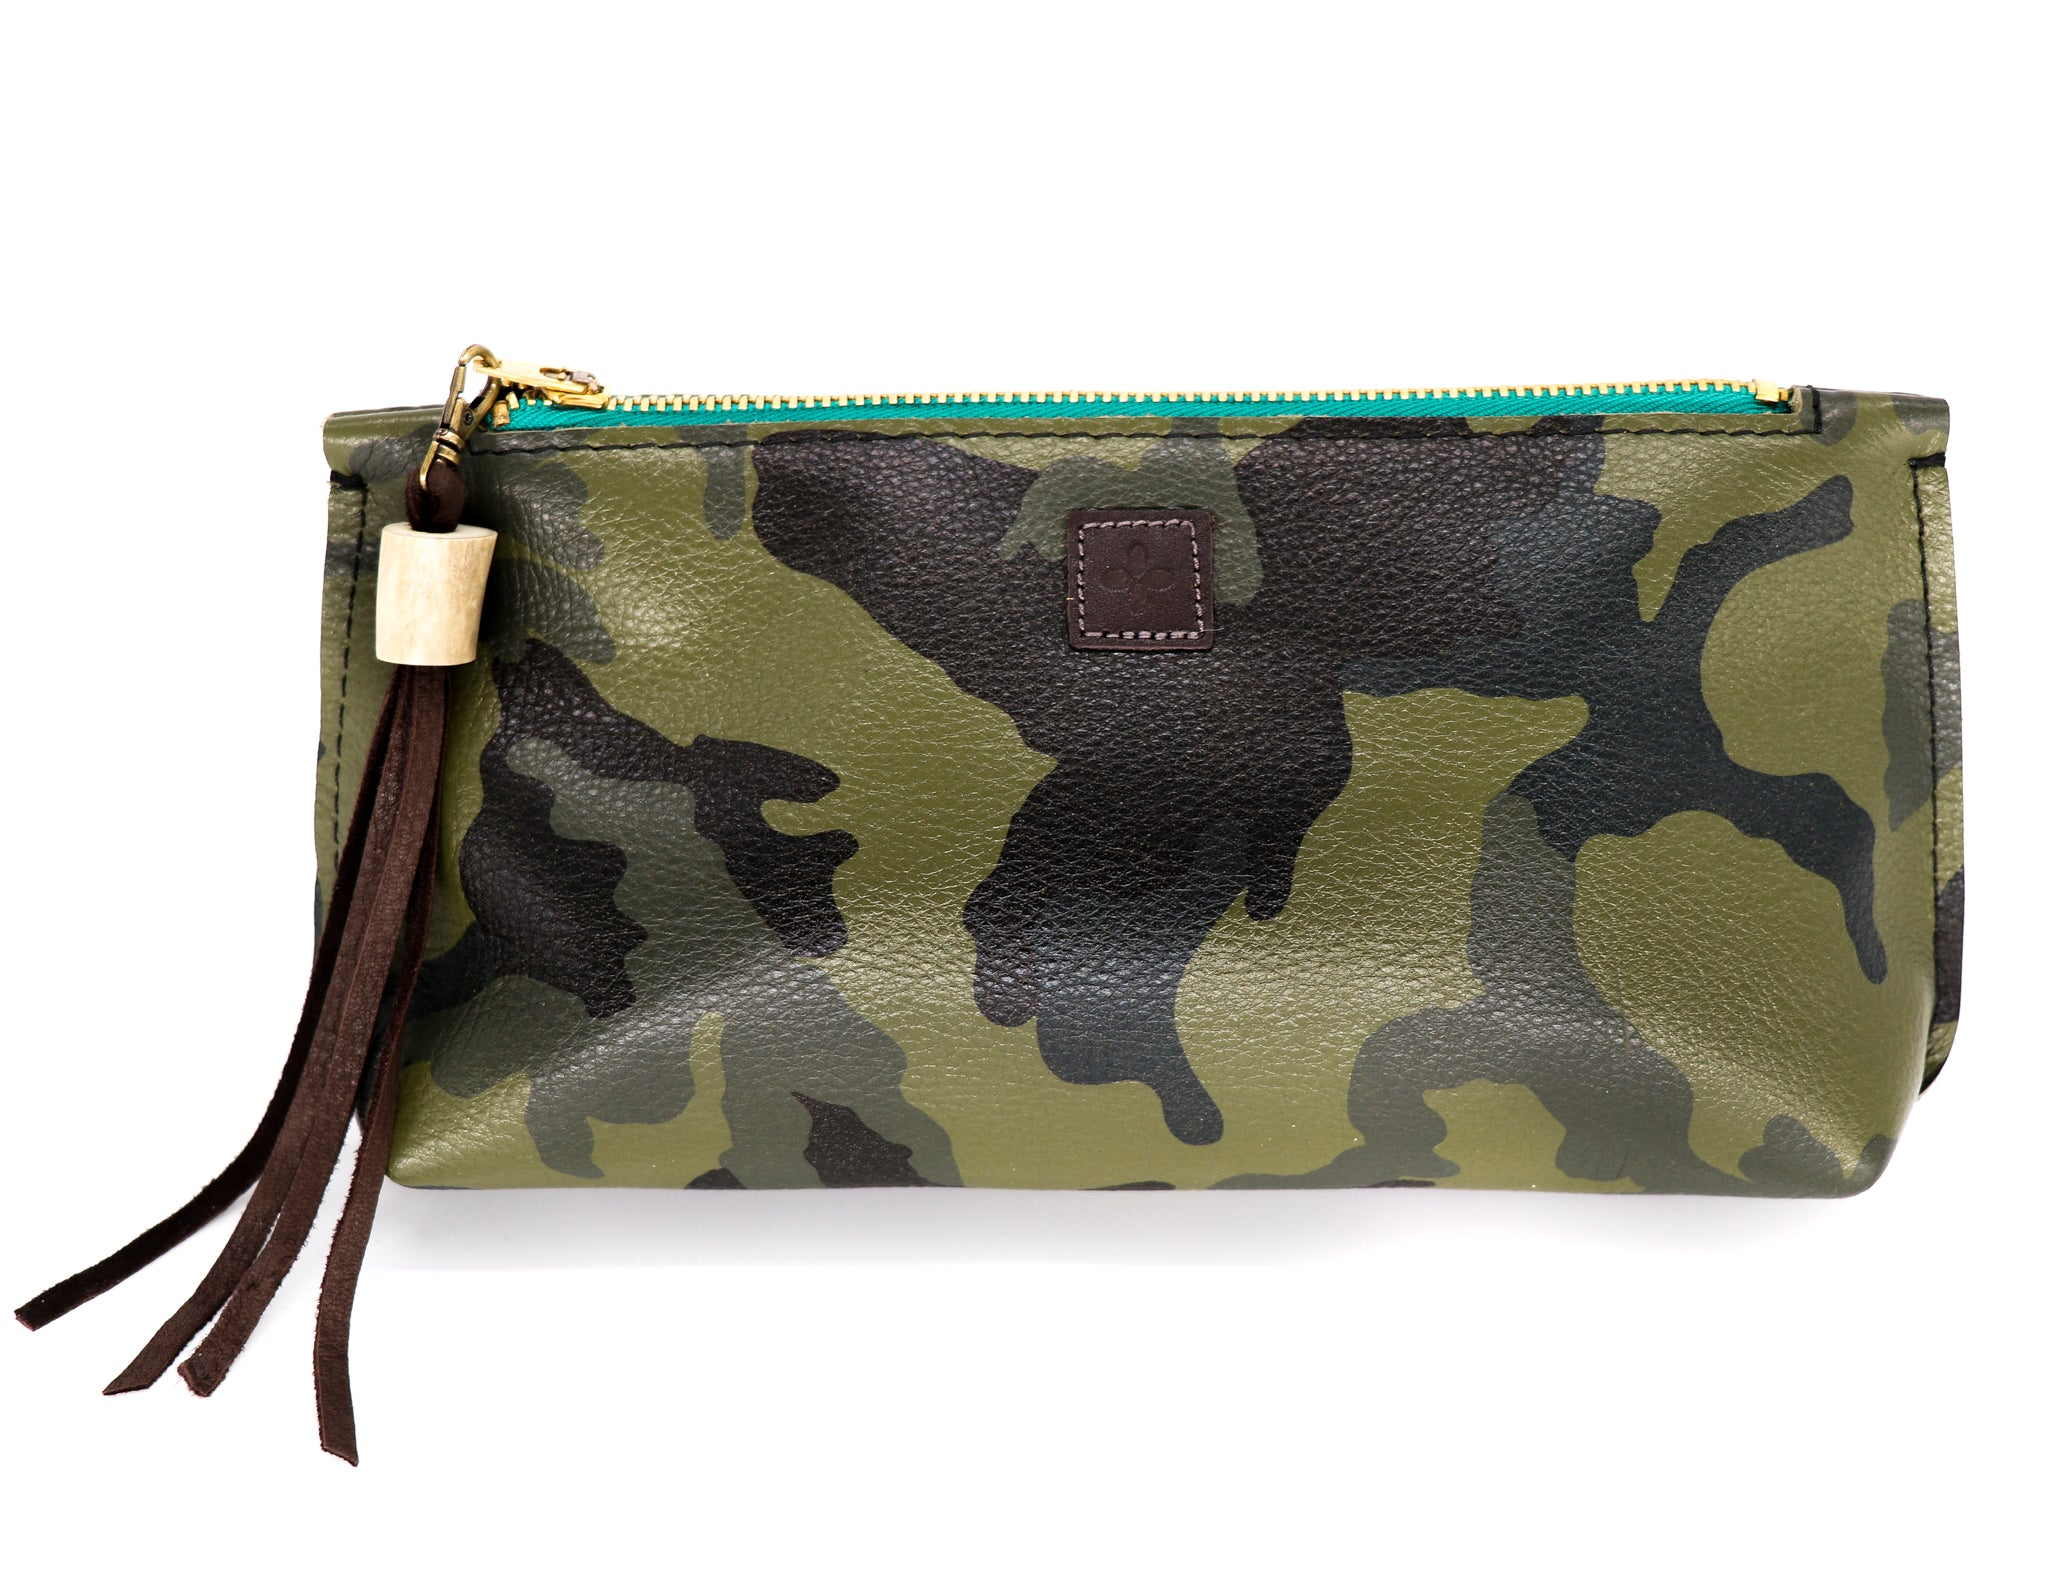 Green camo leather clutch